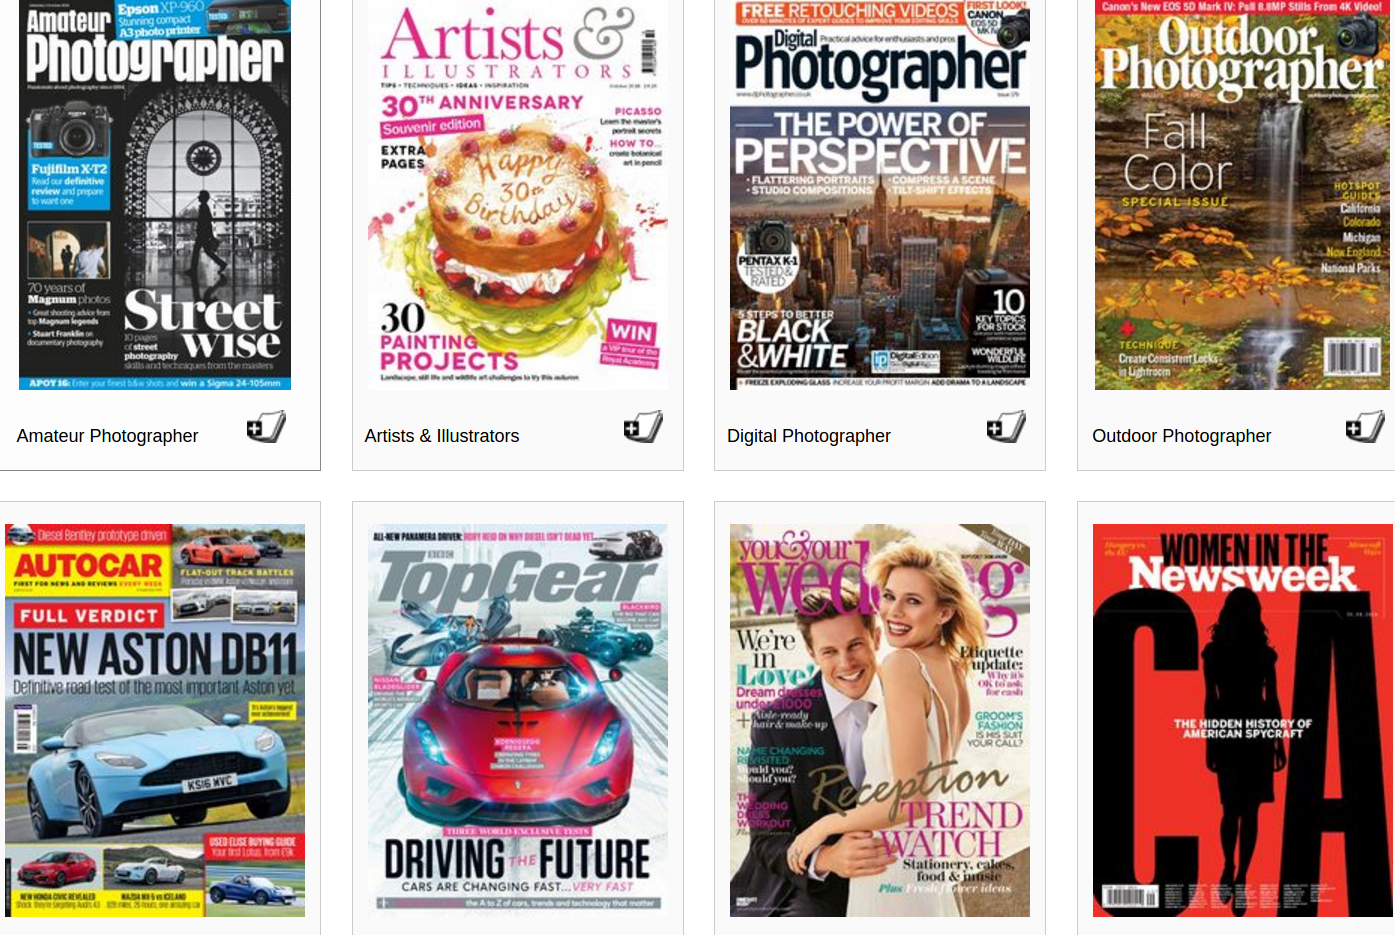 Did you know you can read all these magazines online for